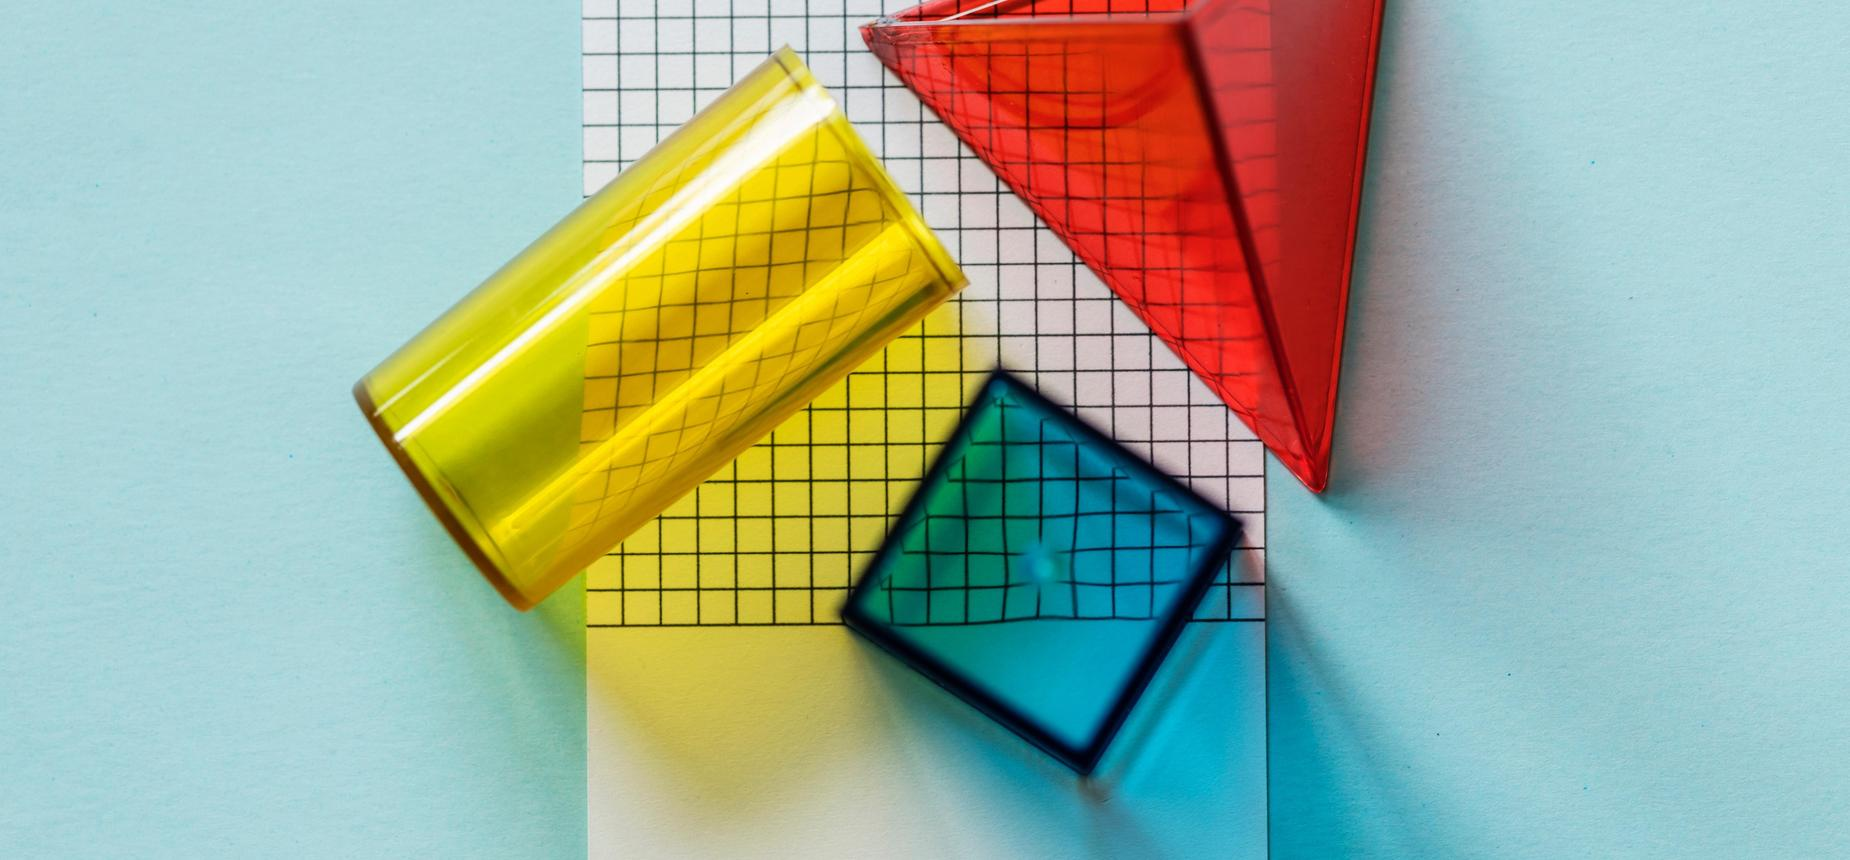 Colorful shapes on graph paper